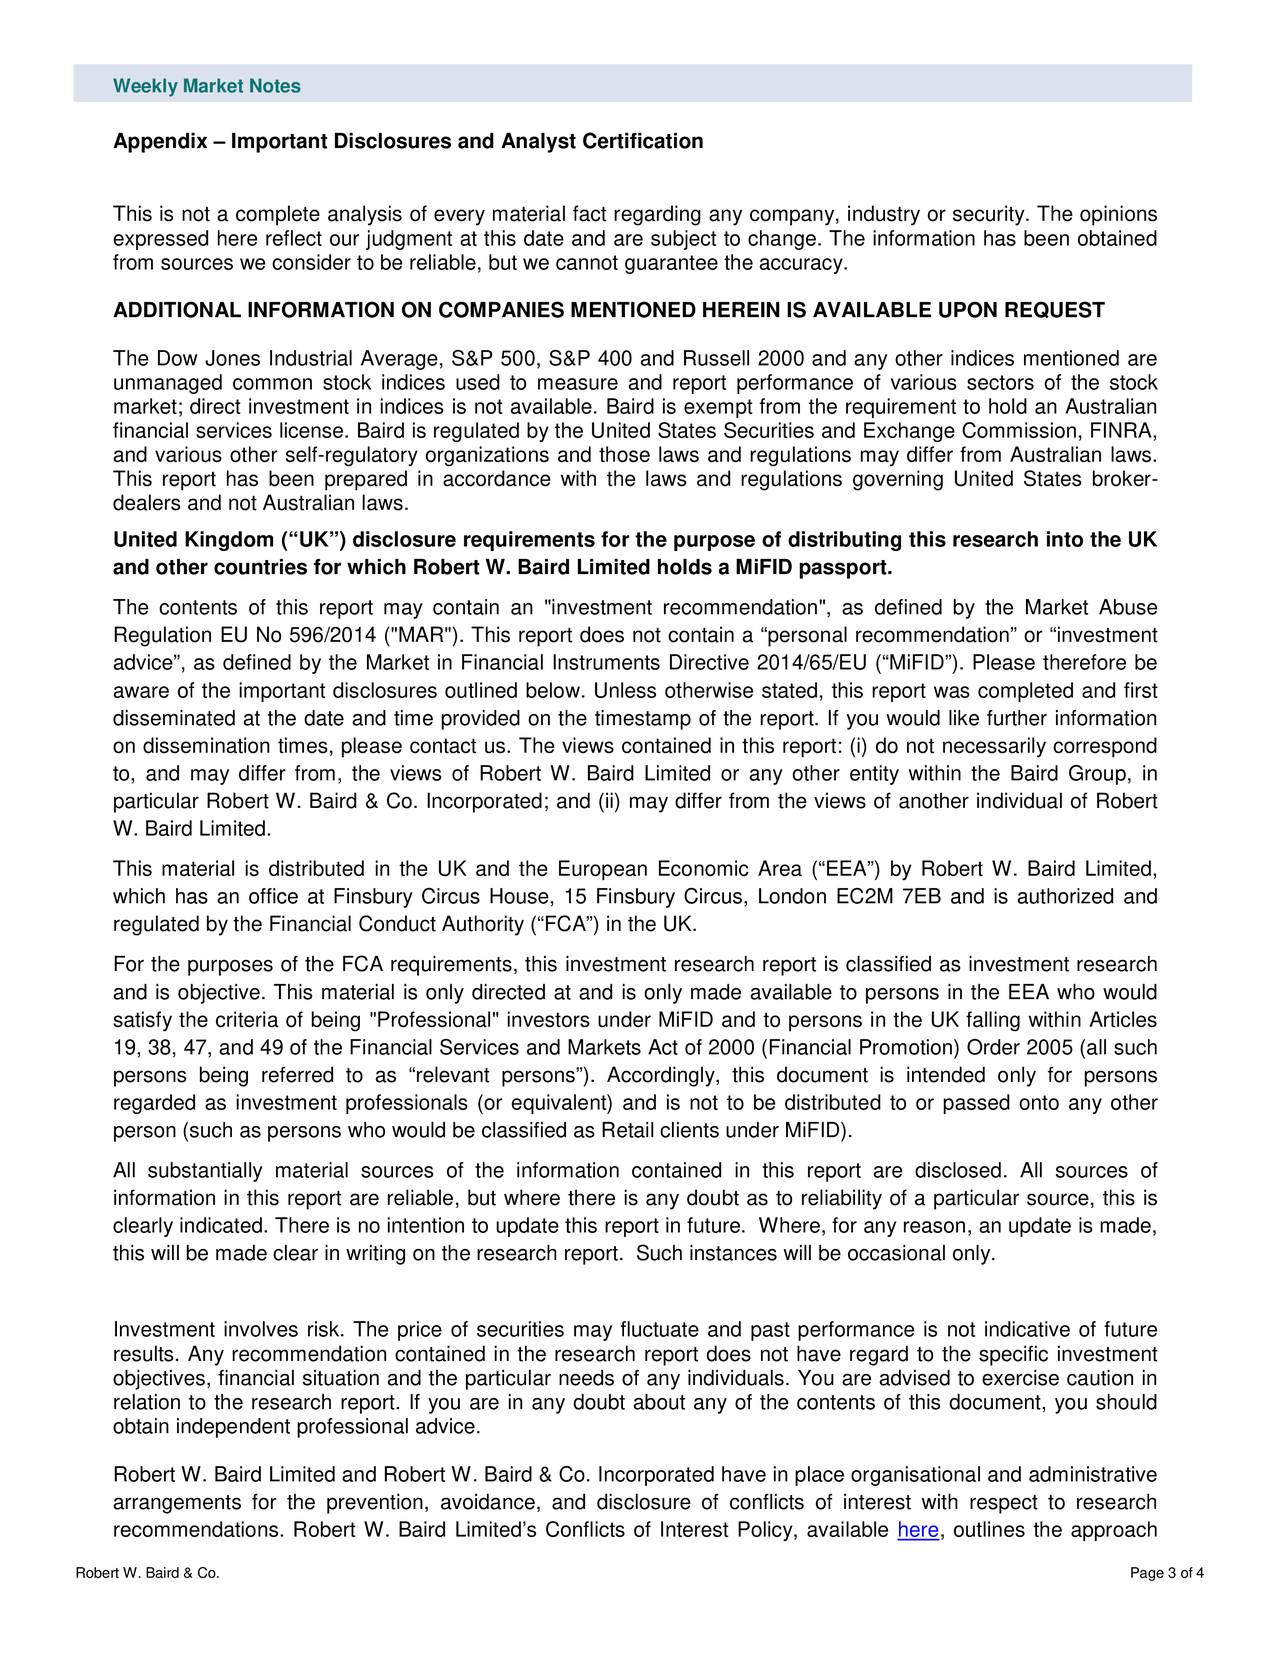 """Appendix – Important Disclosures and Analyst Certification This is not a complete analysis of every material fact regarding any company, industry or security. The opinions expressed here reflect our judgment at this date and are subject to change. The information has been obtained from sources we consider to be reliable, but we cannot guarantee the accuracy. ADDITIONAL INFORMATION ON COMPANIES MENTIONED HEREIN IS AVAILABLE UPON REQUEST The Dow Jones Industrial Average, S&P 500, S&P 400 and Russell 2000 and any other indices mentioned are unmanaged common stock indices used to measure and report performance of various sectors of the stock market; direct investment in indices is not available. Baird is exempt from the requirement to hold an Australian financial services license. Baird is regulated by the United States Securities and Exchange Commission, FINRA, and various other self -regulatory organizations and those laws and regulations may differ from Australian laws. This report has been prepared in accordance with the laws and regulations governing United States broker - dealers and not Australian laws. United Kingdom (""""UK"""") disclosure requirements for the purpose of distributing this research into the UK and other countries for which Robert W. Baird Limited holds a MiFID passport. The contents of this report may contain an """"investment recommendation"""", as defined by the Market Abuse Regulation EU No 596/2014 (""""MAR""""). This report does not contain a """"personal recommendation"""" or """"investment advice"""", as defined by the Market in Financial Instruments Directive 2014/65/EU (""""MiF ID""""). Please therefore be aware of the important disclosures outlined below. Unless otherwise stated, this report was completed and first disseminated at the date and time provided on the timestamp of the report. If you would like further information on dissemination times, please contact us. The views contained in this report: (i) do not necessarily correspond to, and may differ from, the views"""